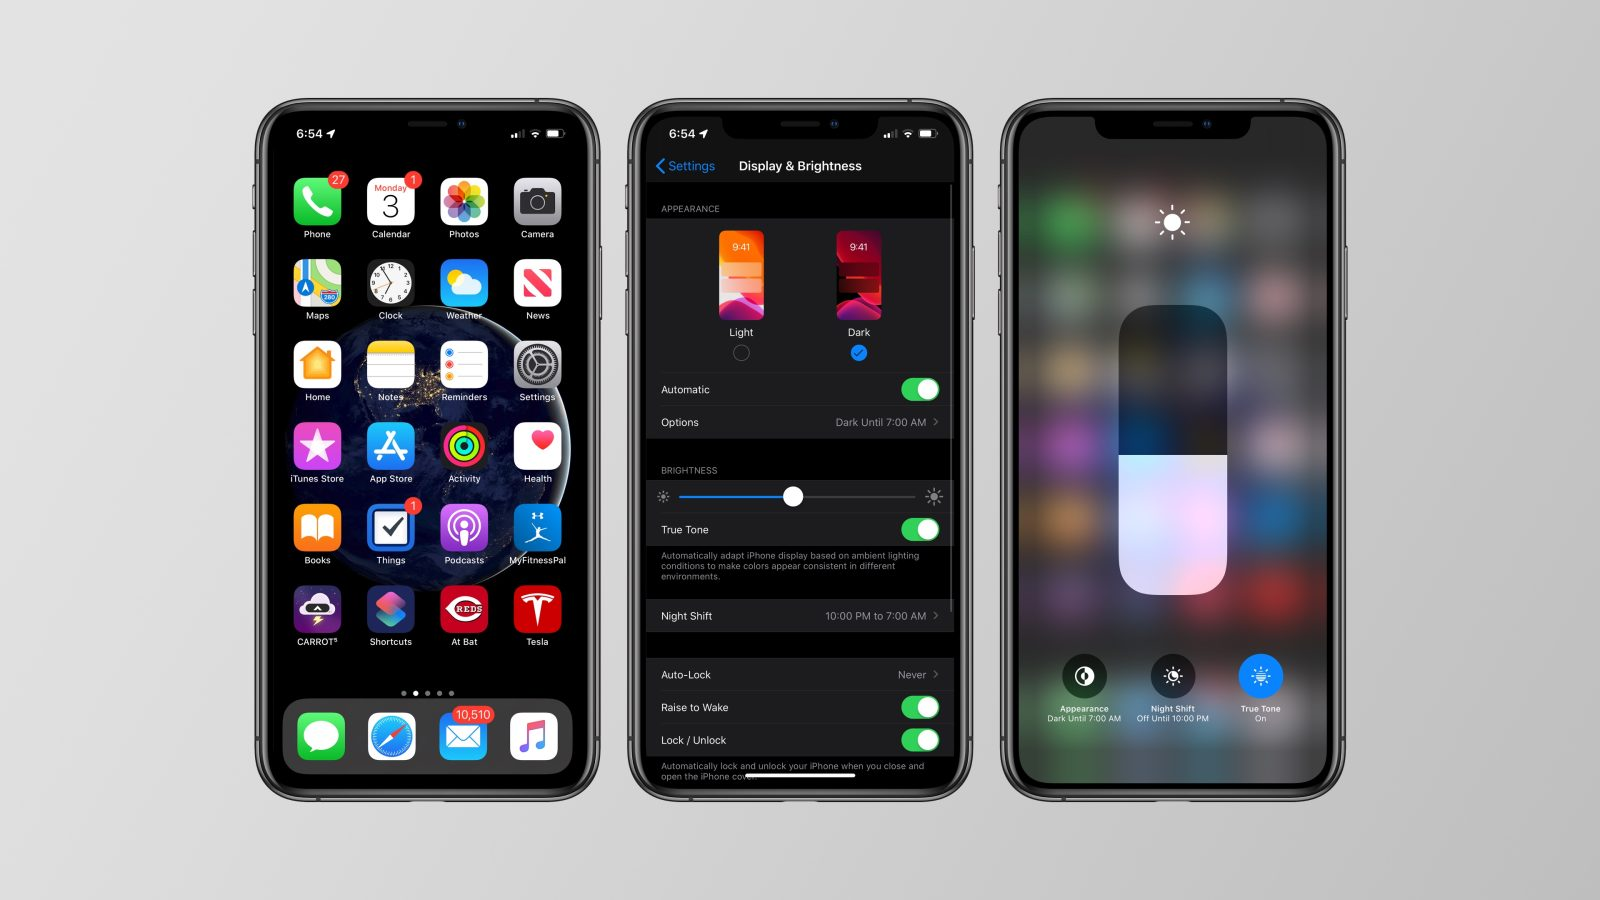 What's new in iOS 13 beta 2? Files improvements, Camera